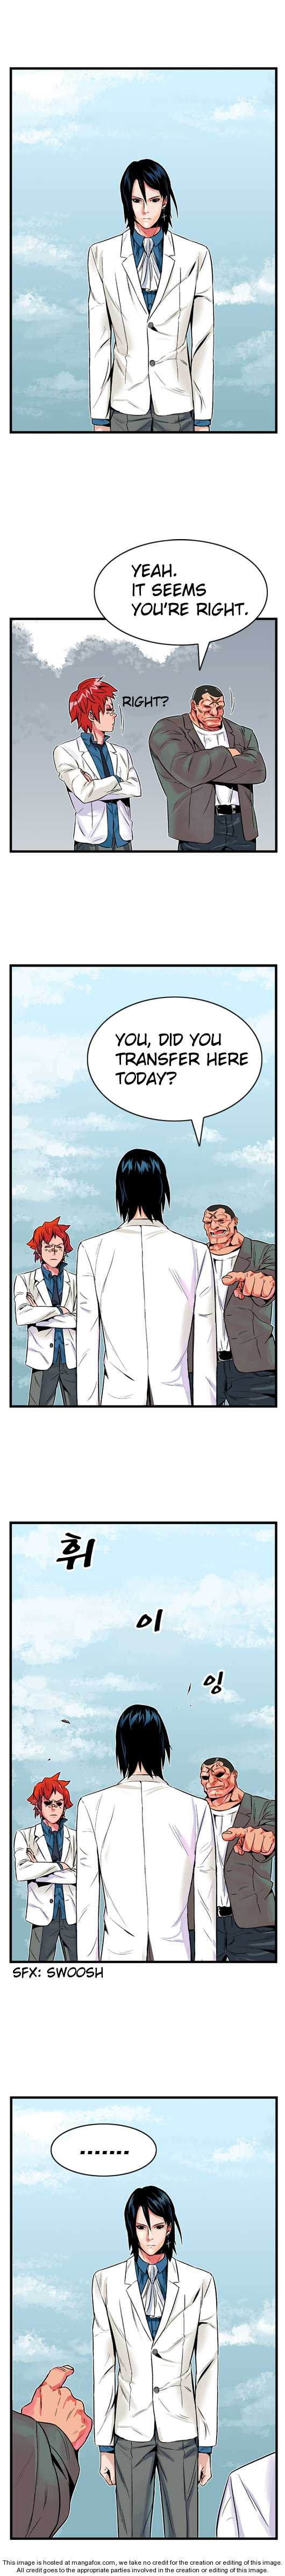 Noblesse 4 Page 3